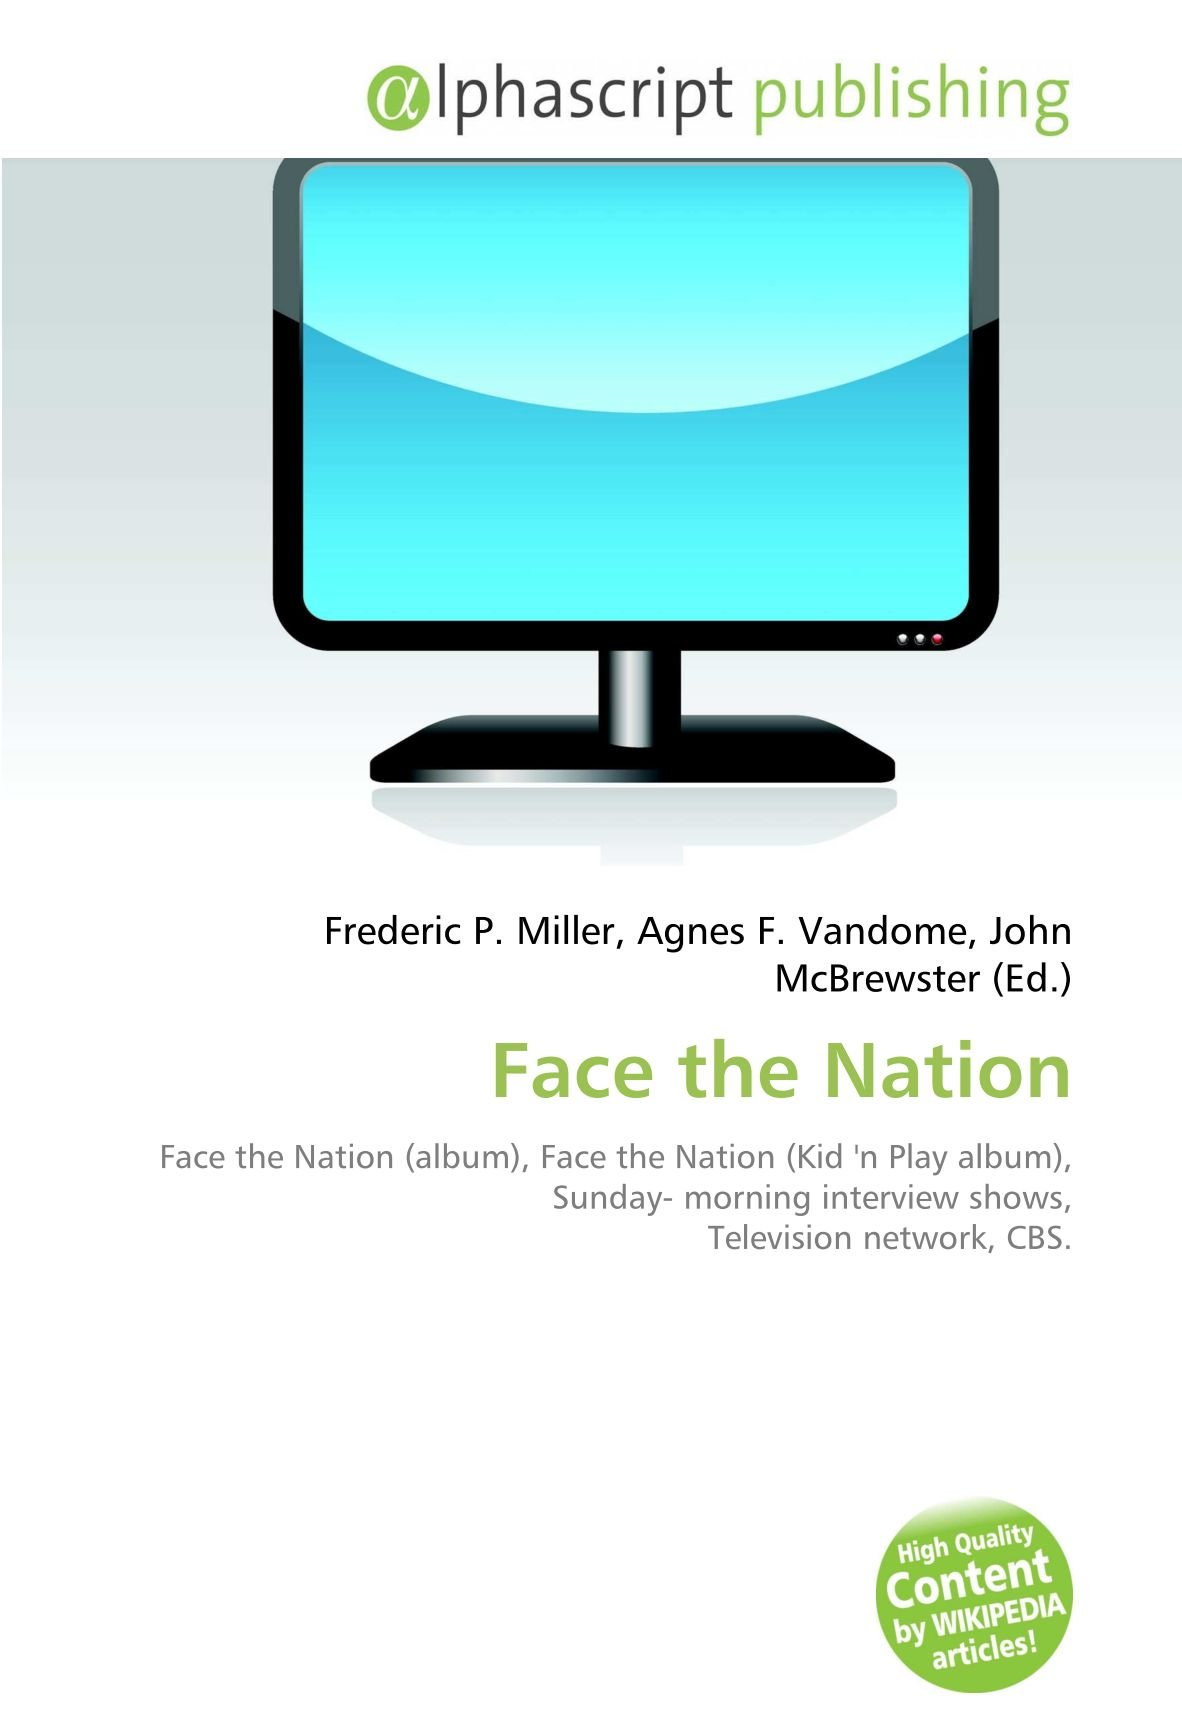 Face the Nation: Face the Nation album , Face the Nation Kid n Play album , Sunday- morning interview shows, Television network, CBS.: Amazon.es: Miller, Frederic P, Vandome, Agnes F, McBrewster, John: